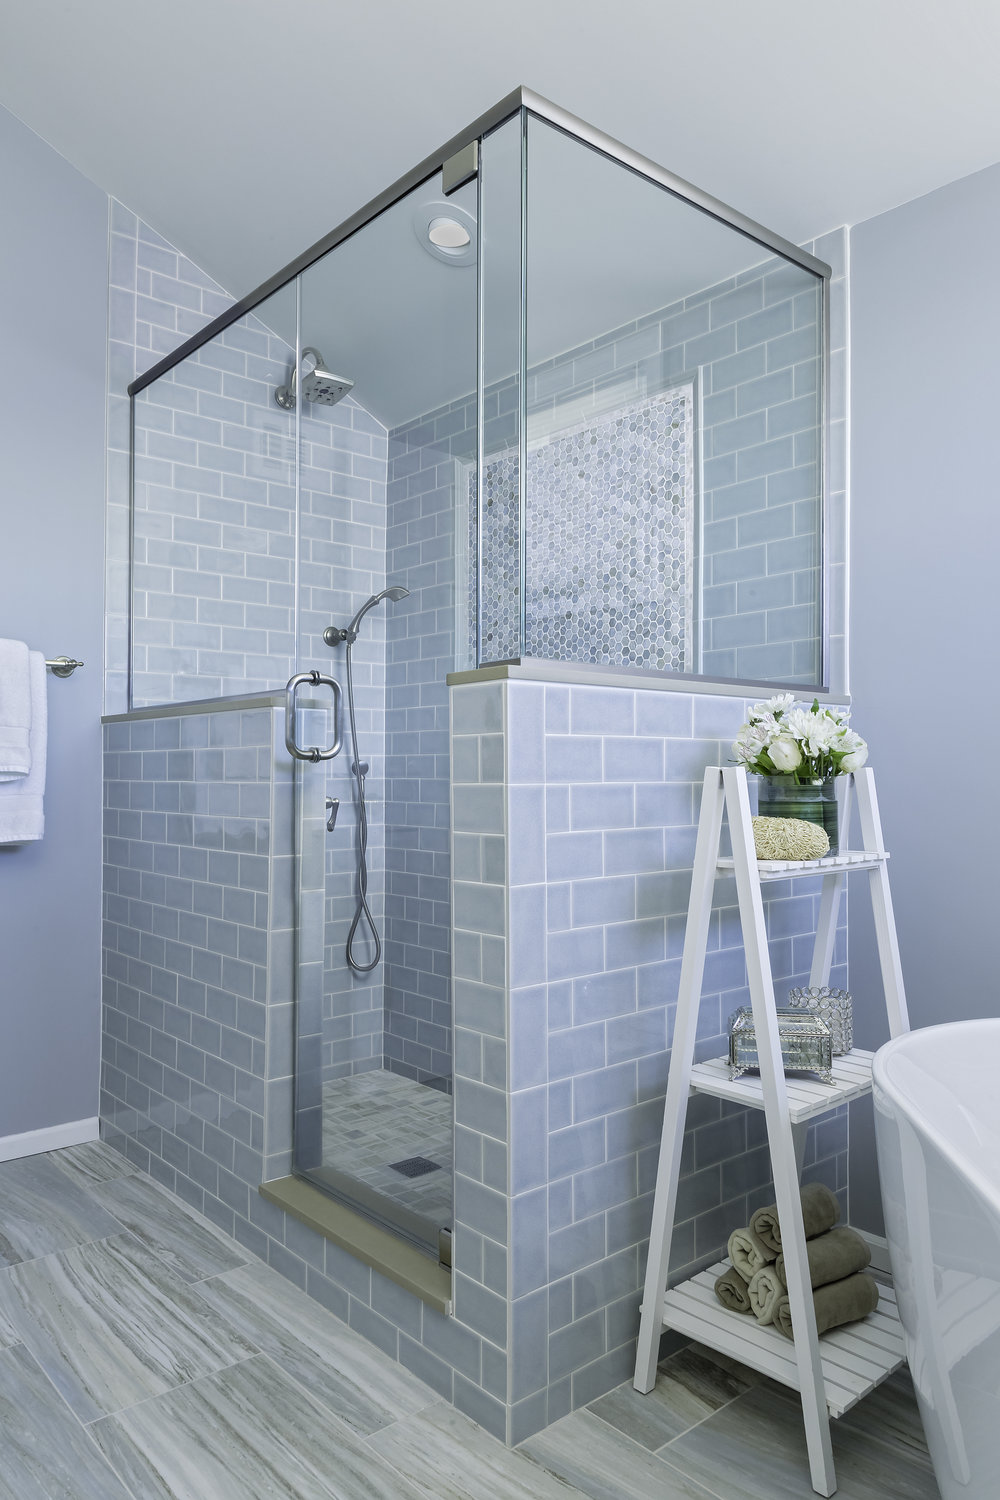 Glass enclosed standing shower with light blue tile walls